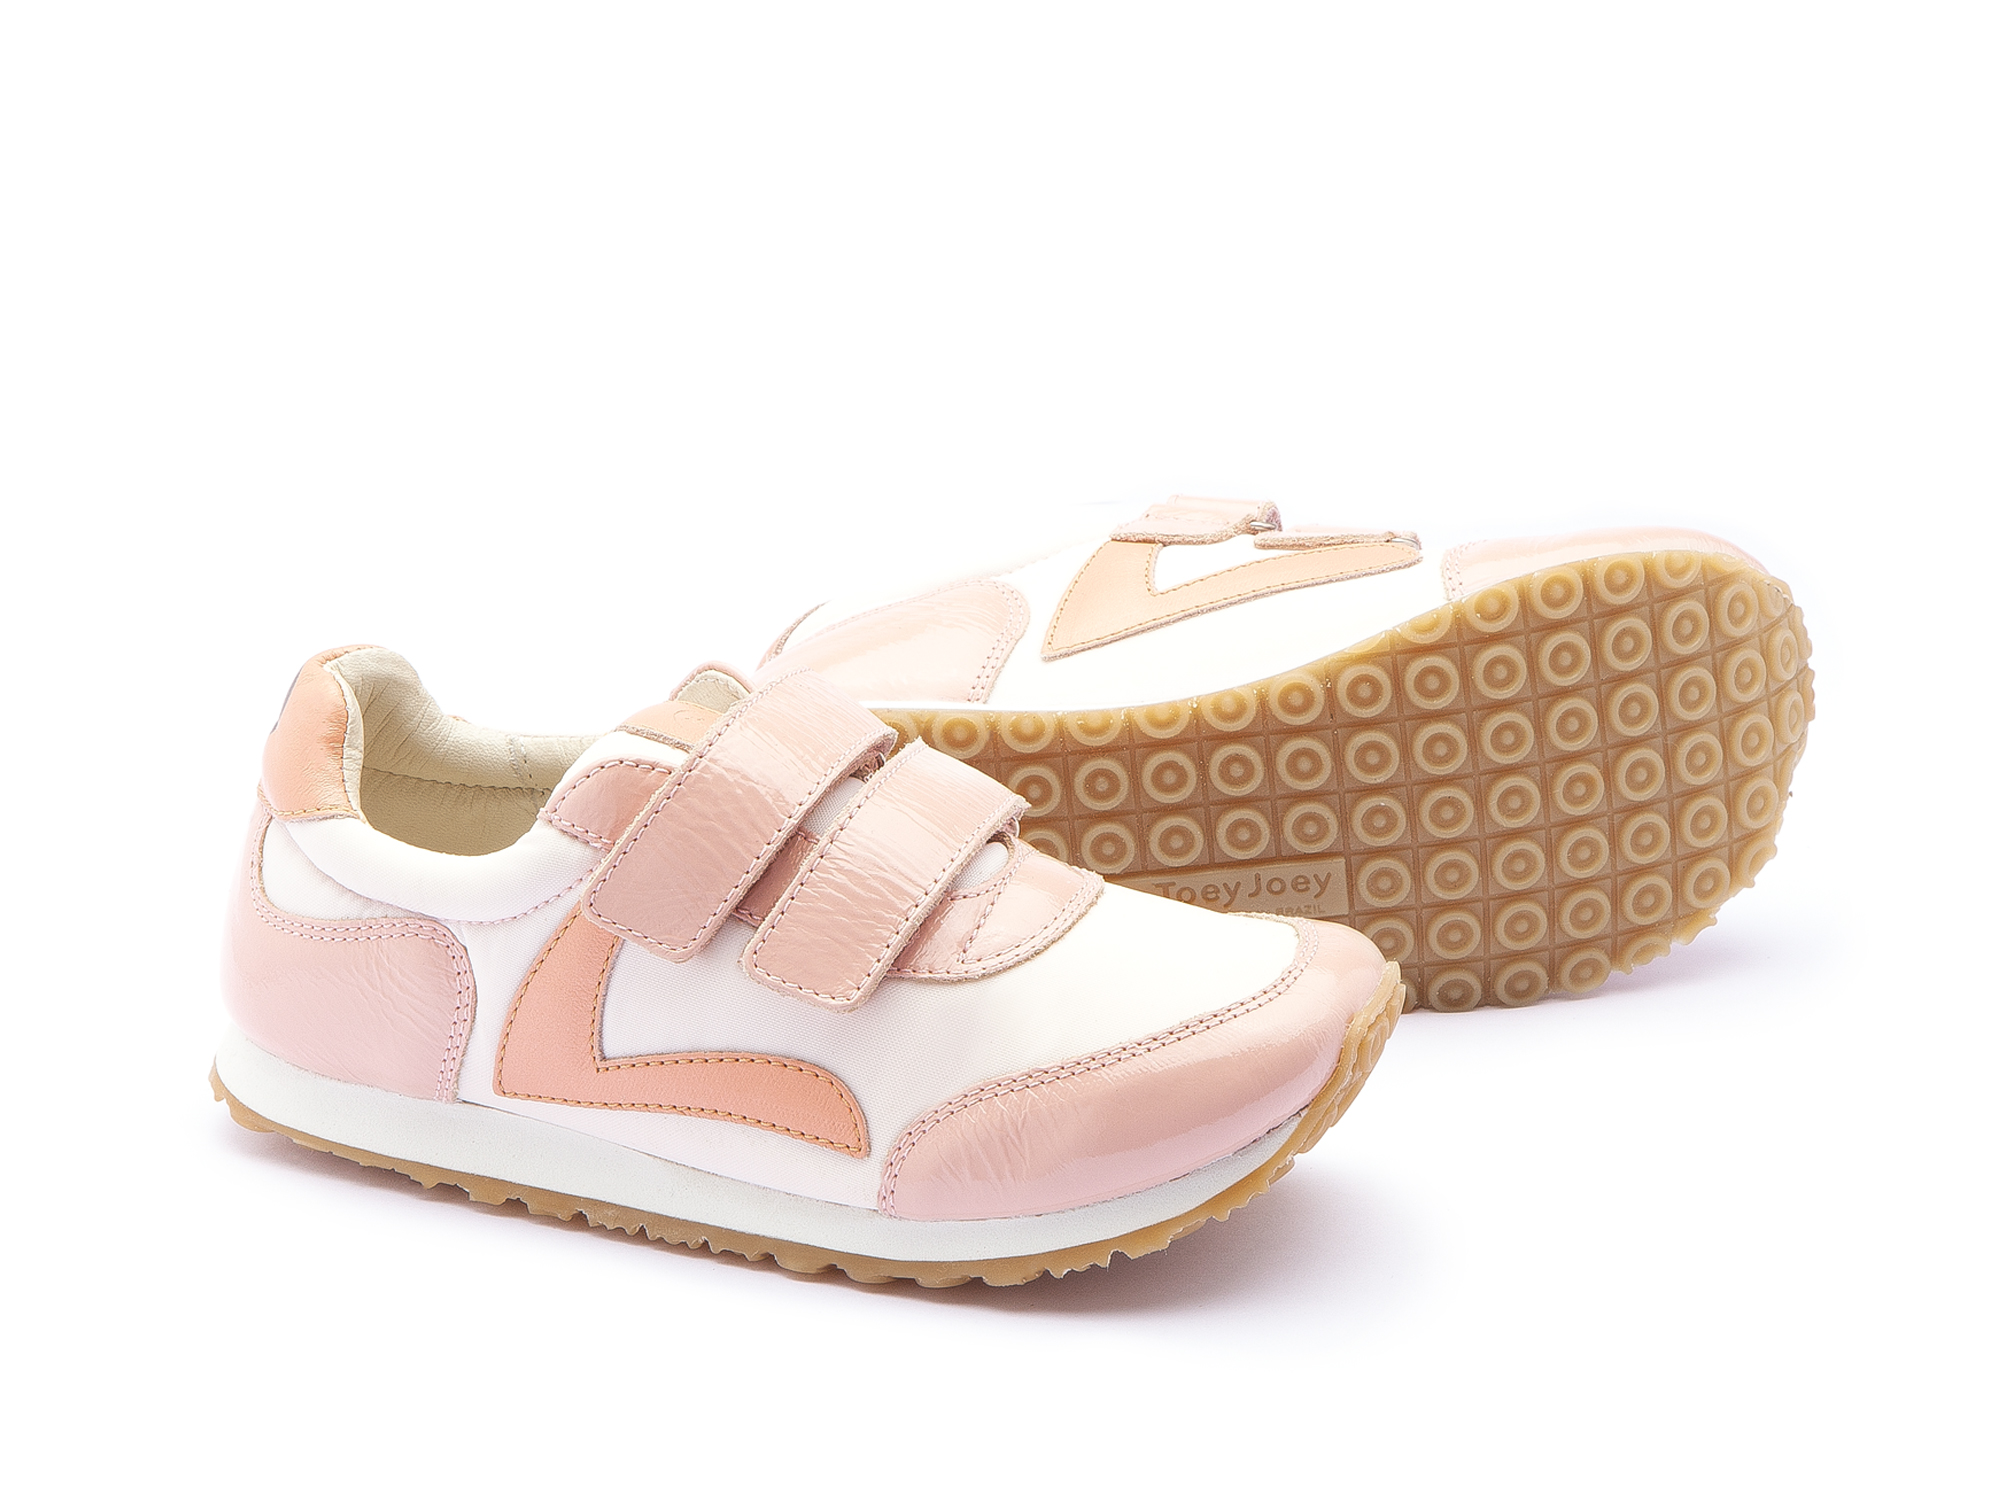 Tênis Jump Light Pink Nylon/ Patent Blush Junior 4 à 8 anos - 2